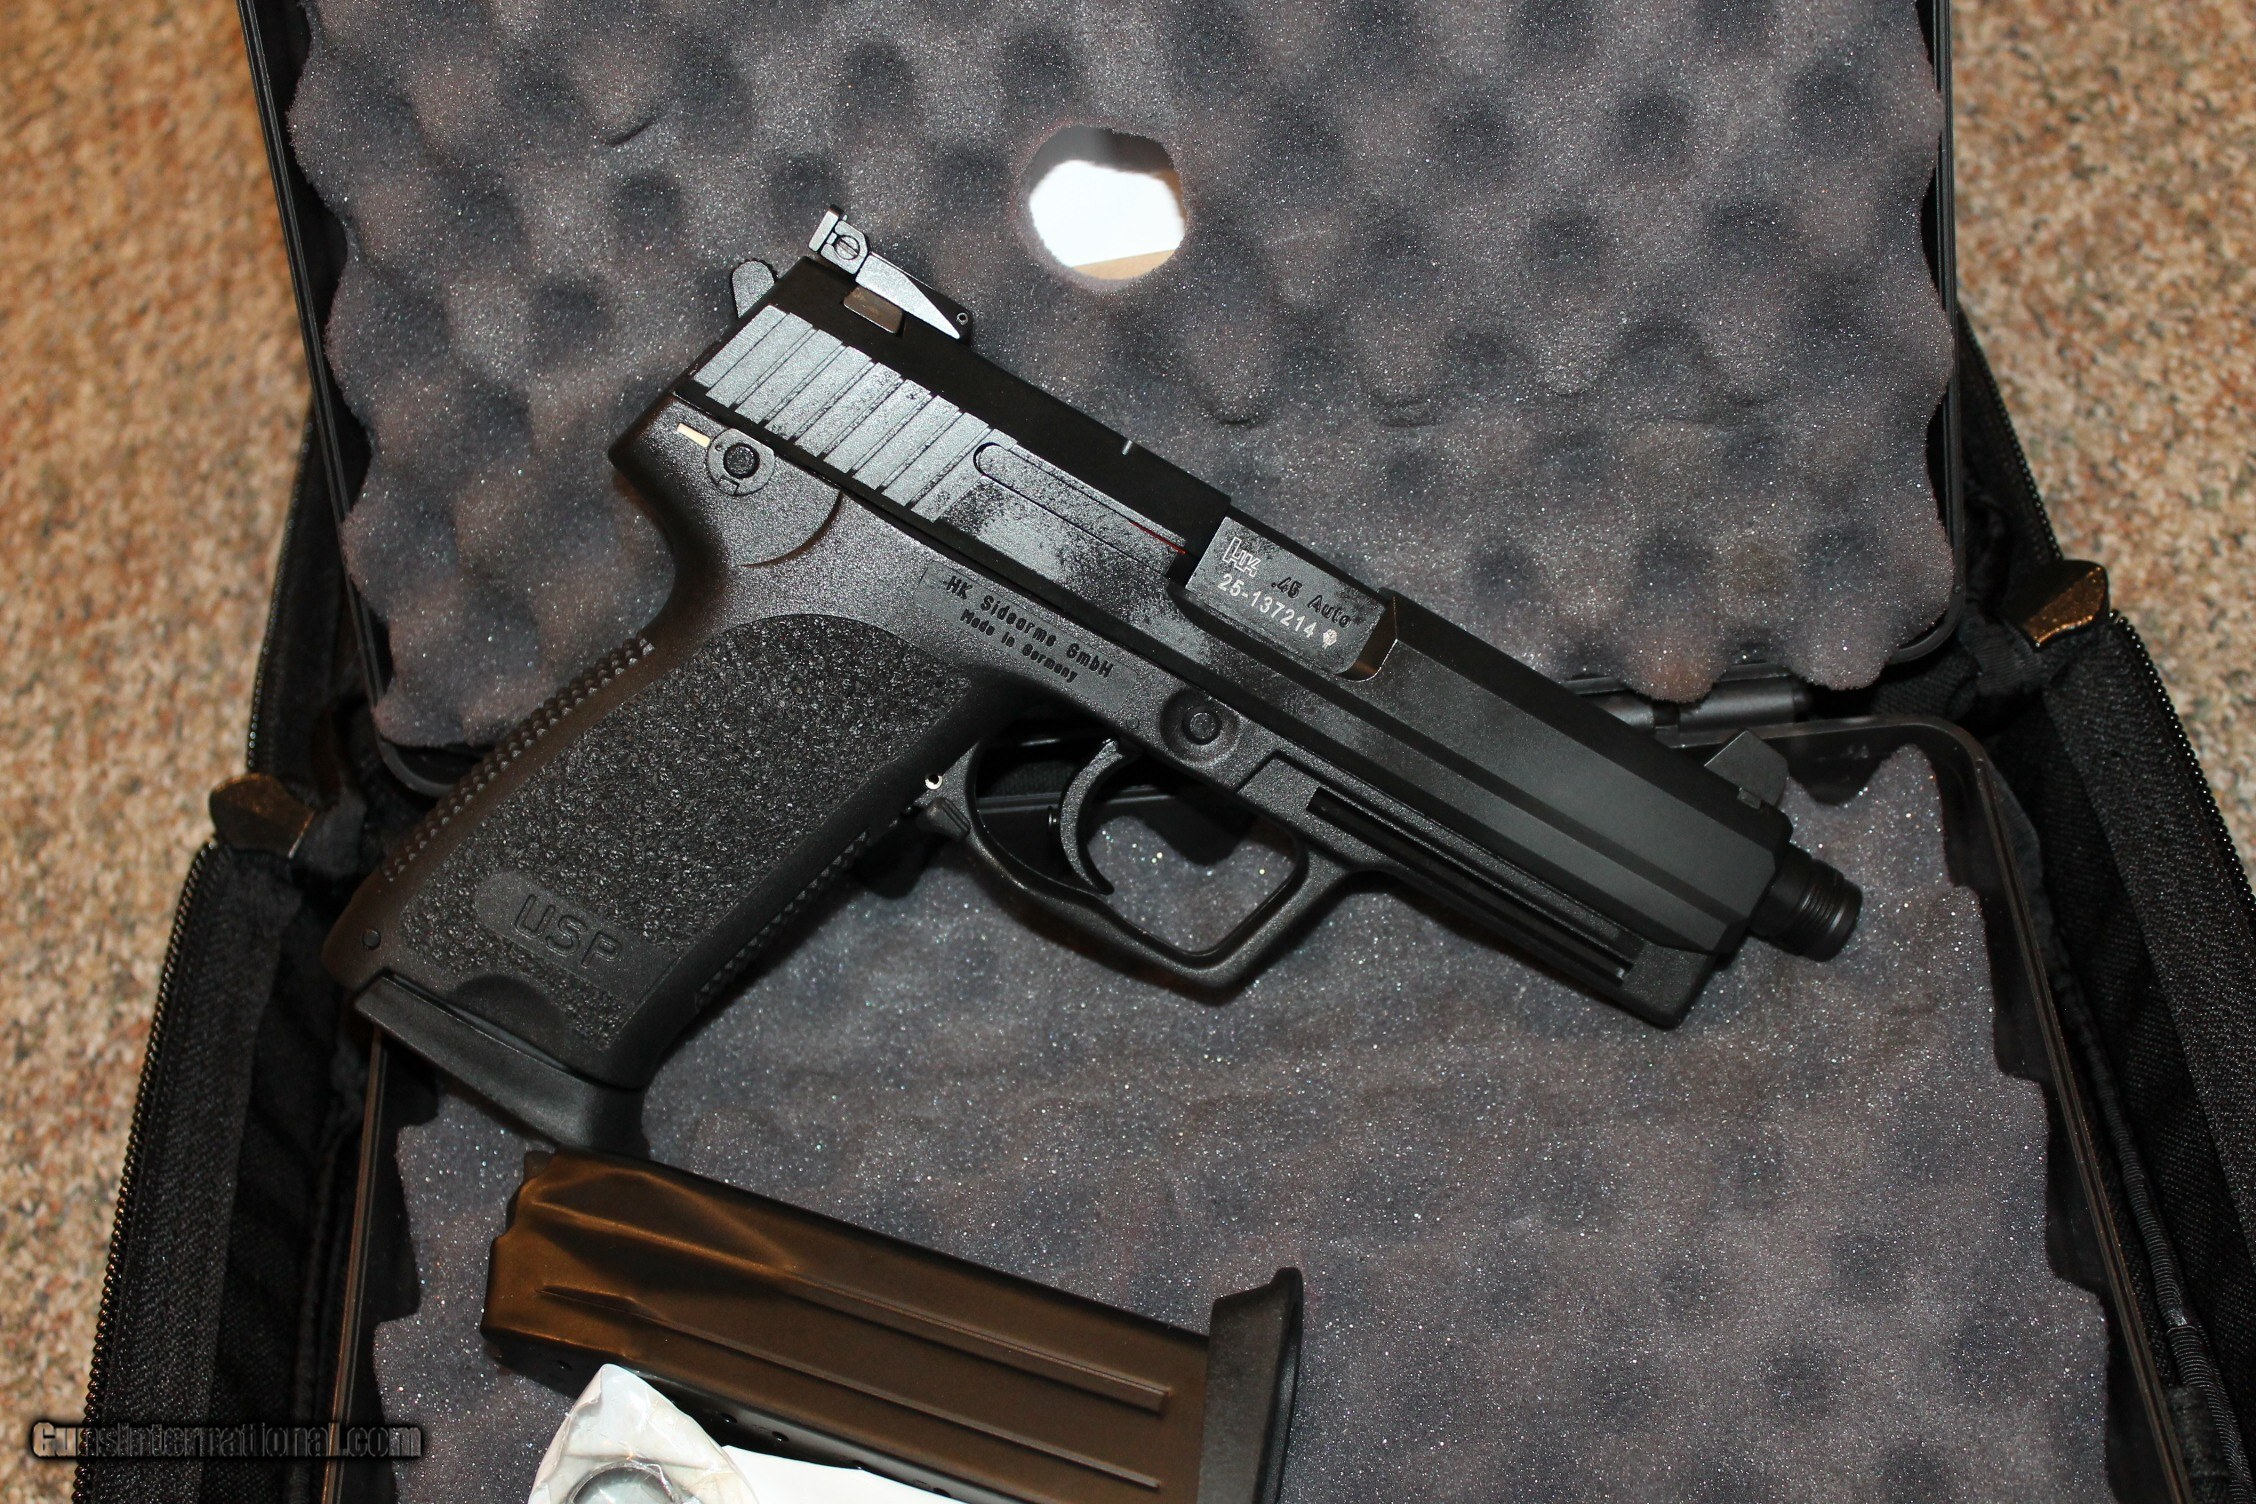 HK Heckler & Koch USP Tactical 45acp NIB with case with